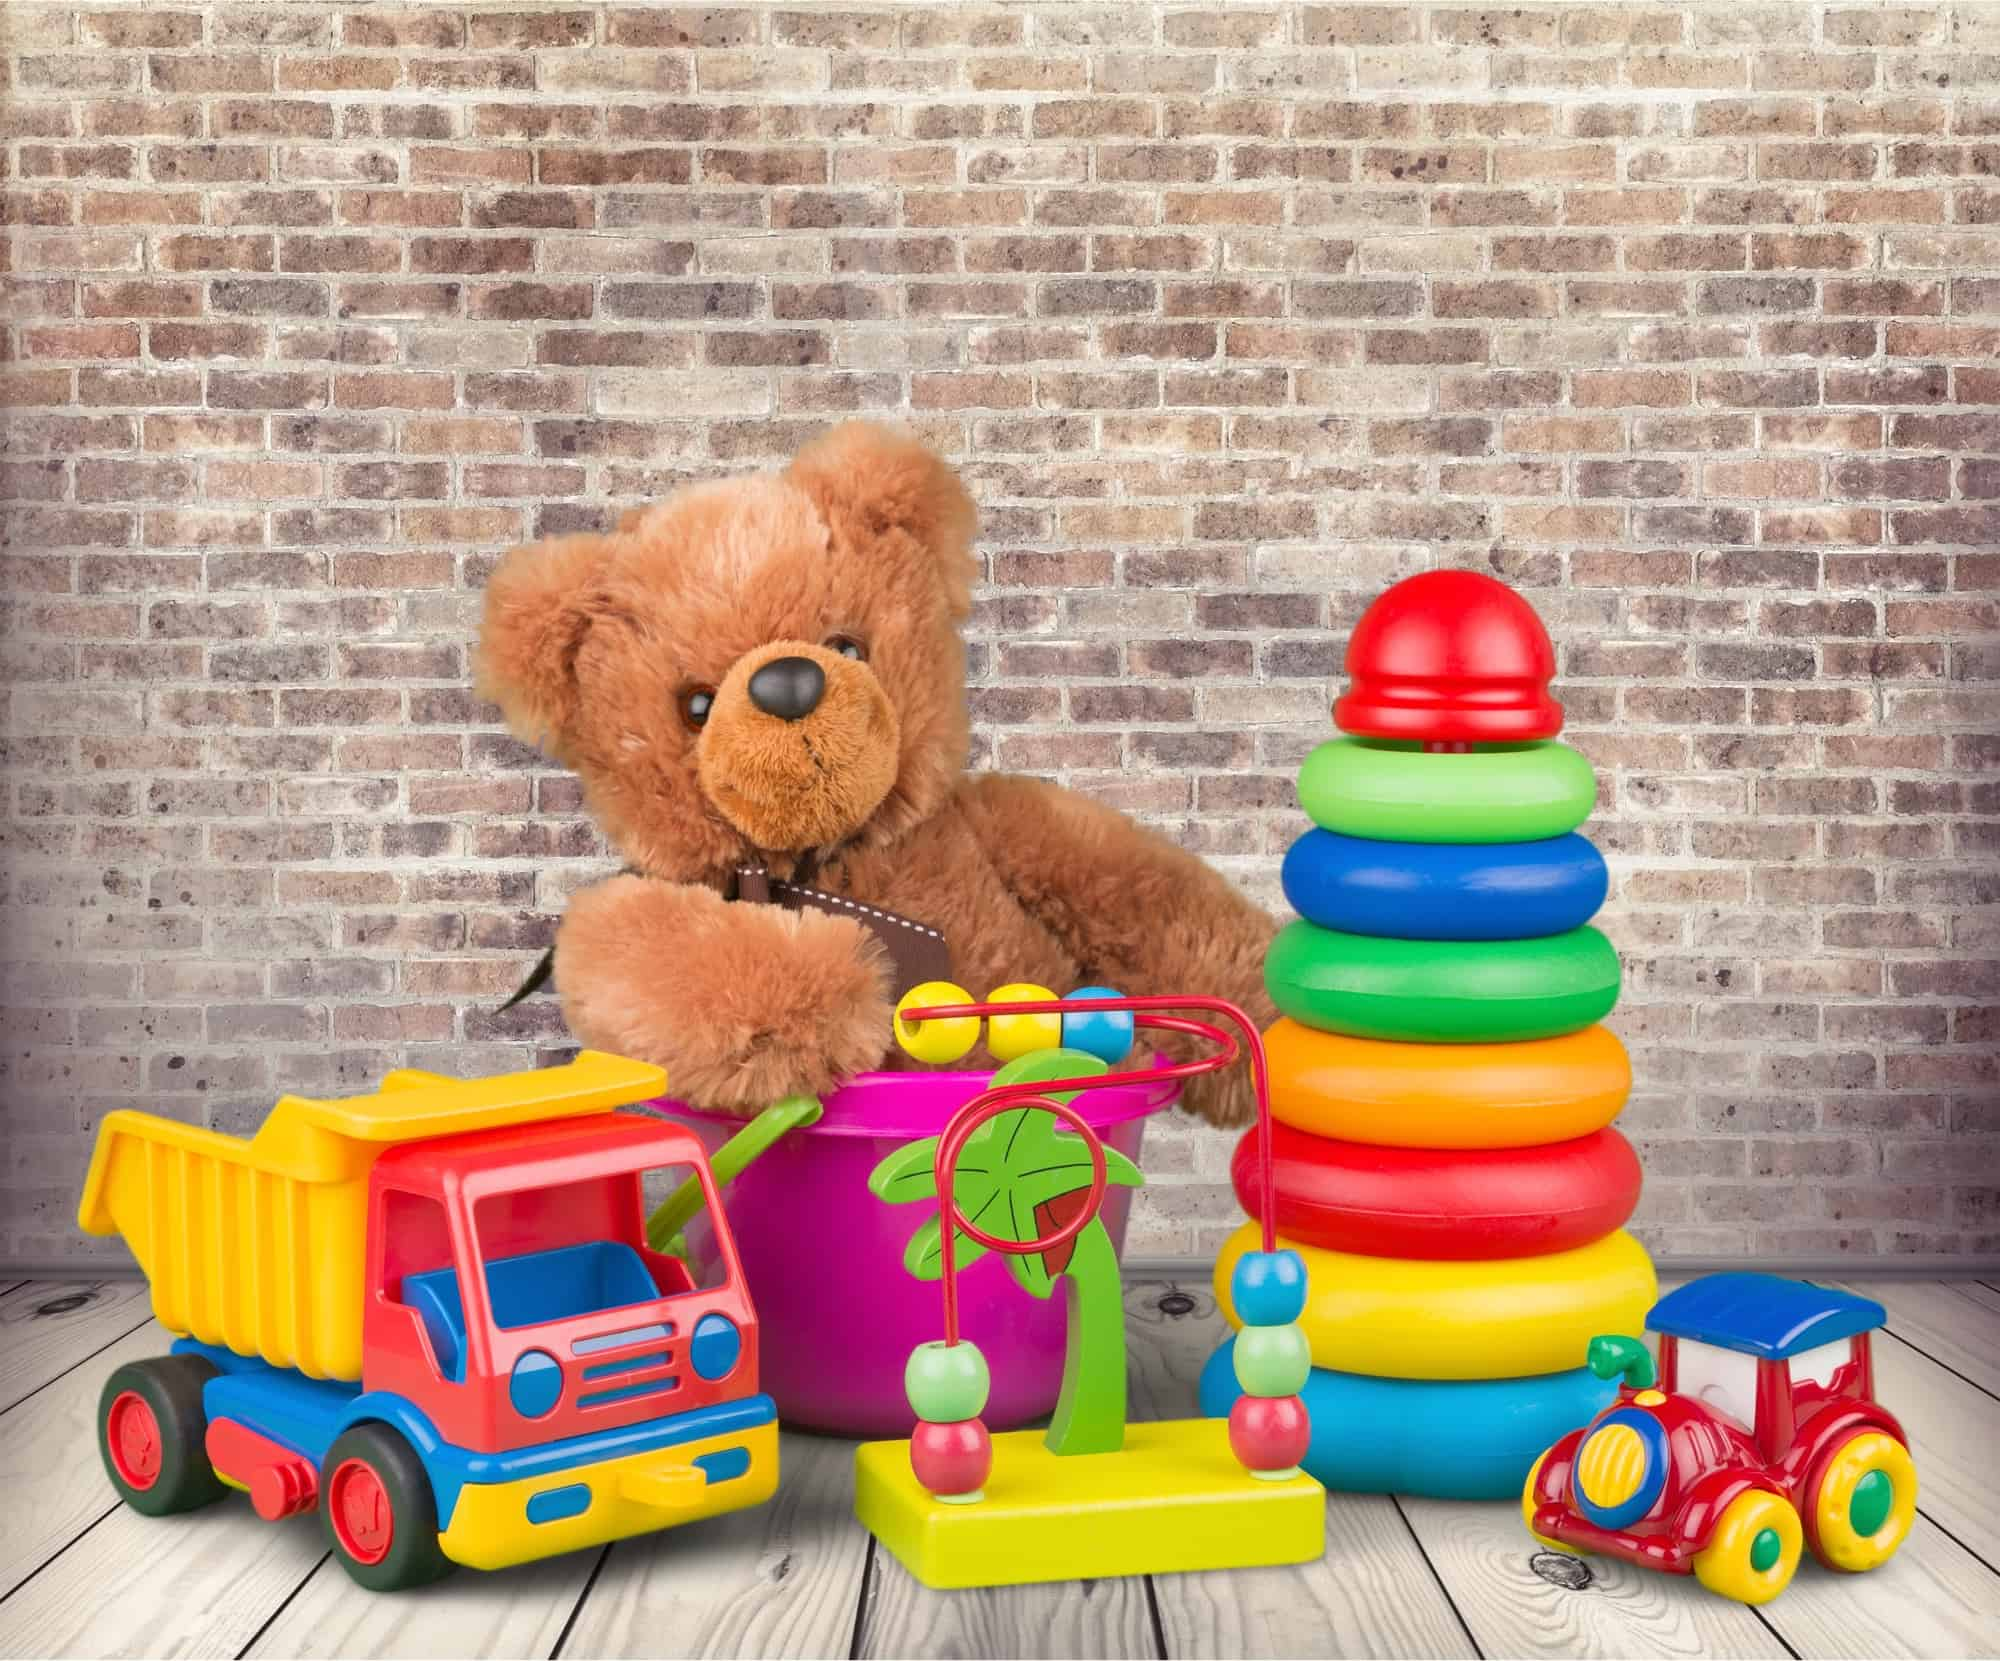 toys including teddy bear, stackable rings and truck